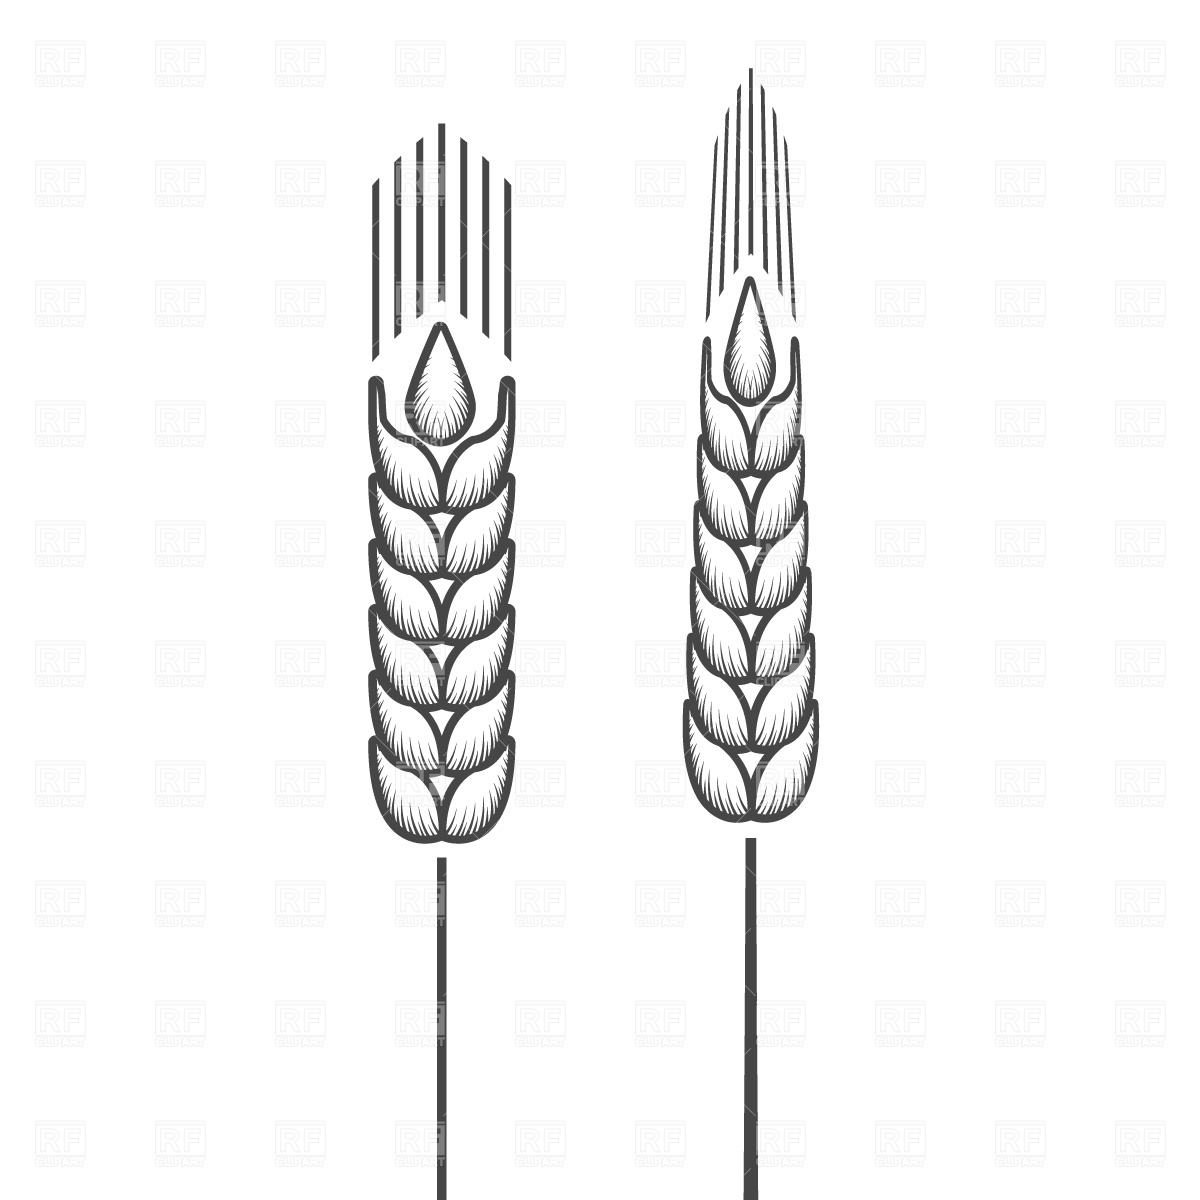 Wheat 648 Food And Beverages Download Royalty Free Vector Clipart